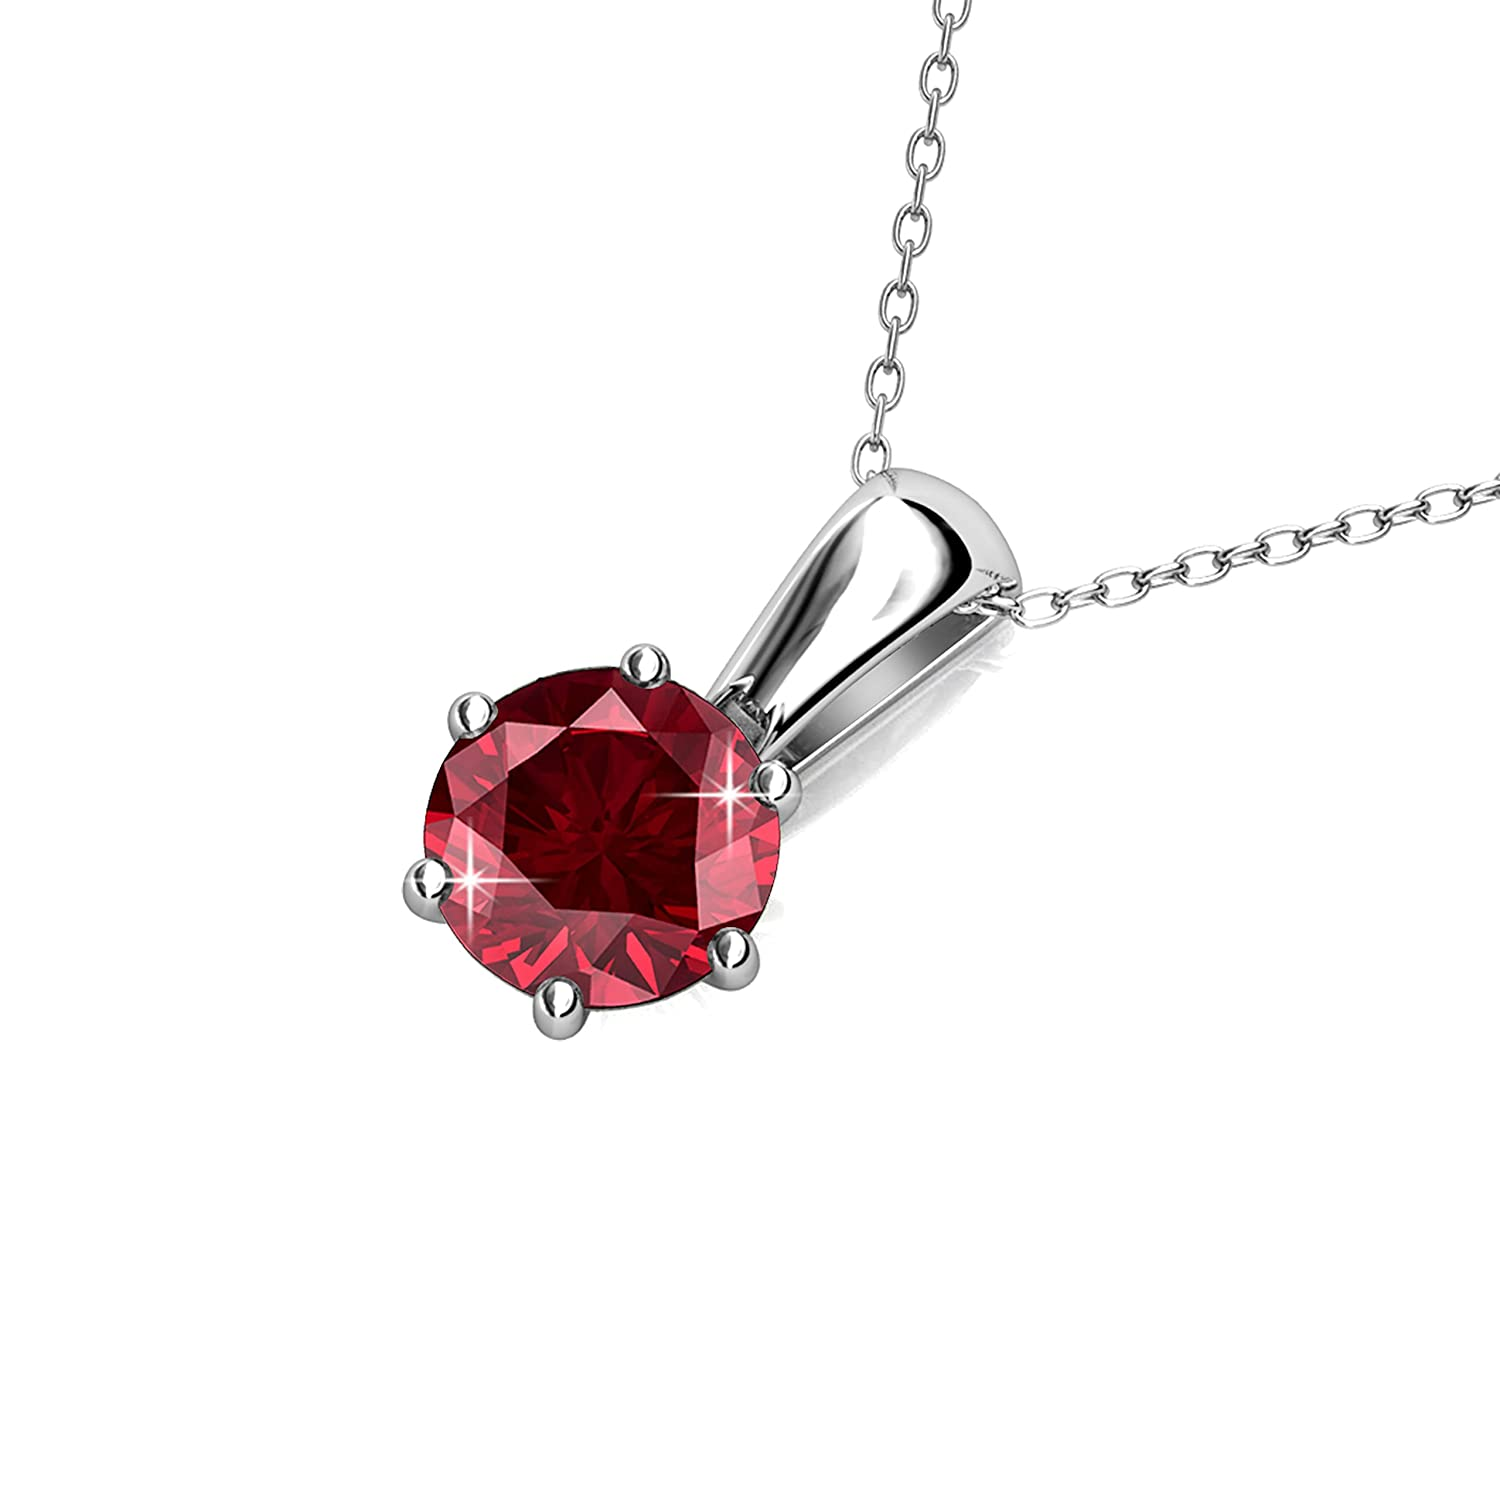 Private Twinkle 18ct White Gold Plated Necklace with Birthstone Pendant made with crystal from SWAROVSKI for Women (6mm) jPjEnF4479